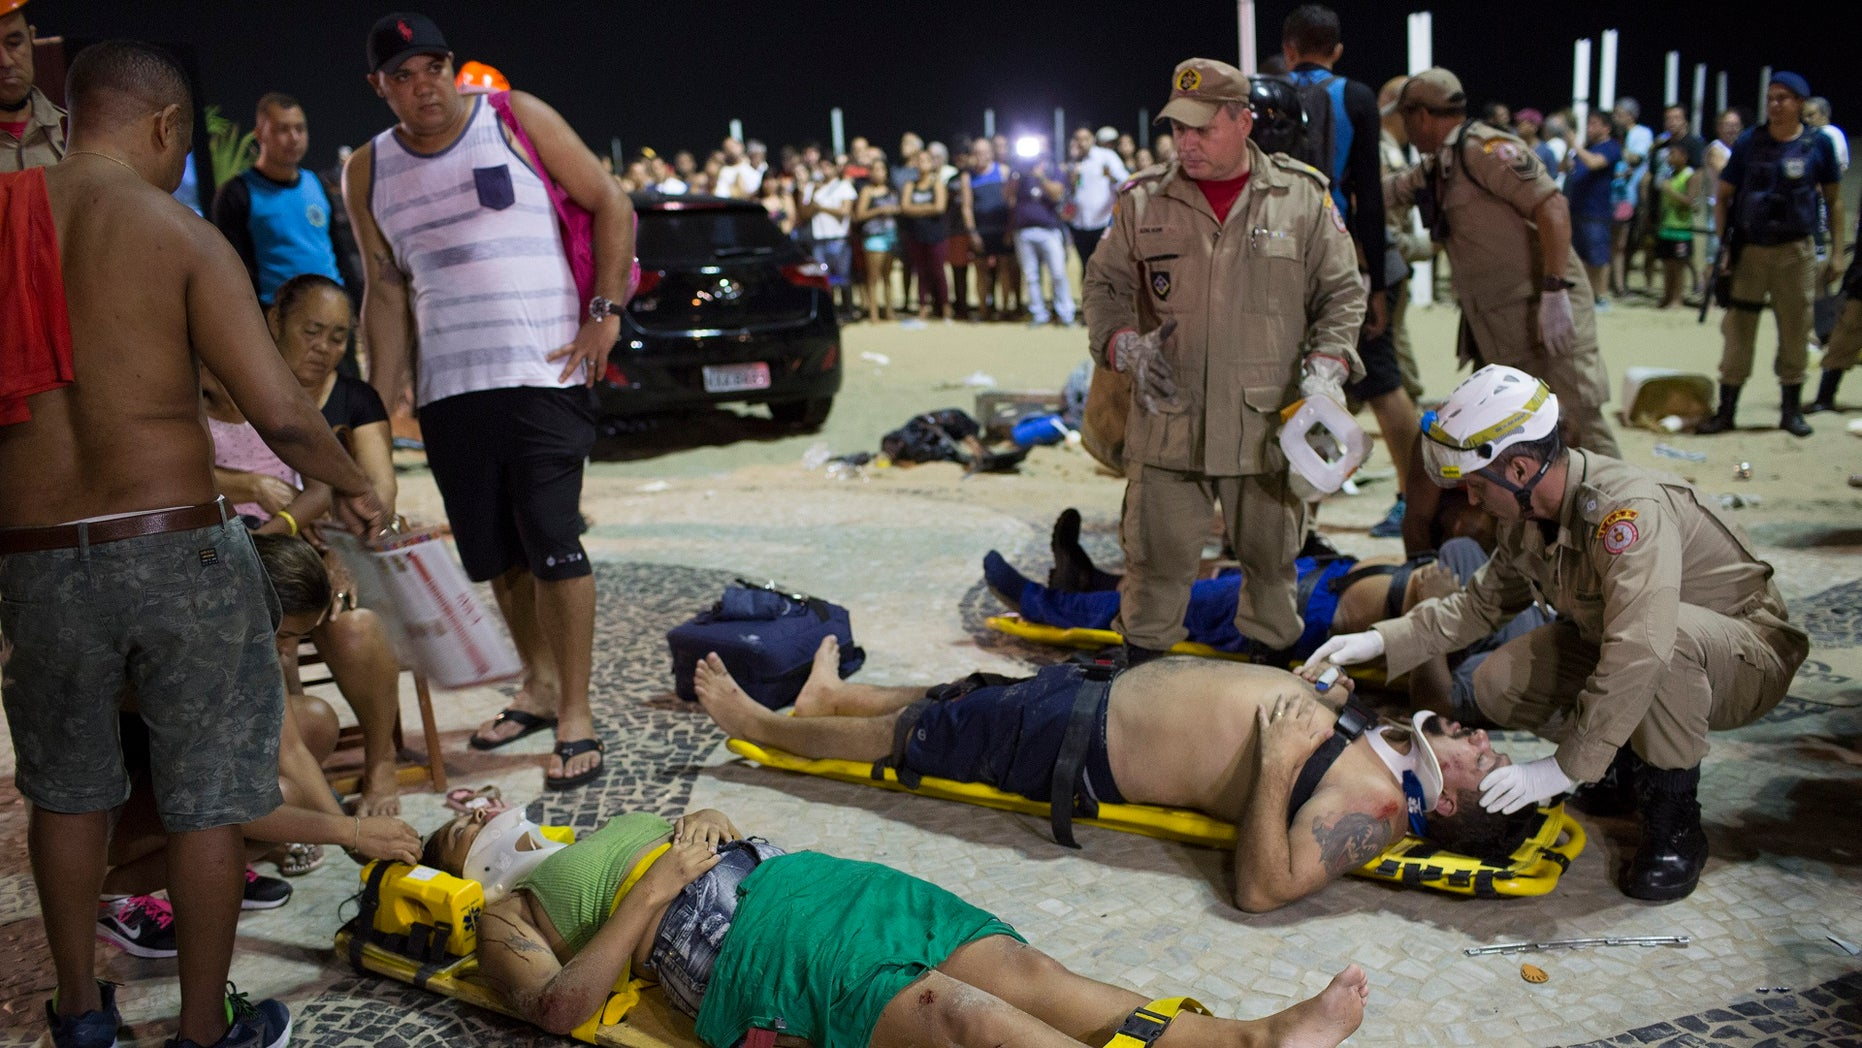 Firefighters provide aid to people that were injured when a car drove into the crowded seaside boardwalk along Copacabana beach in Rio de Janeiro, Brazil on Thursday.